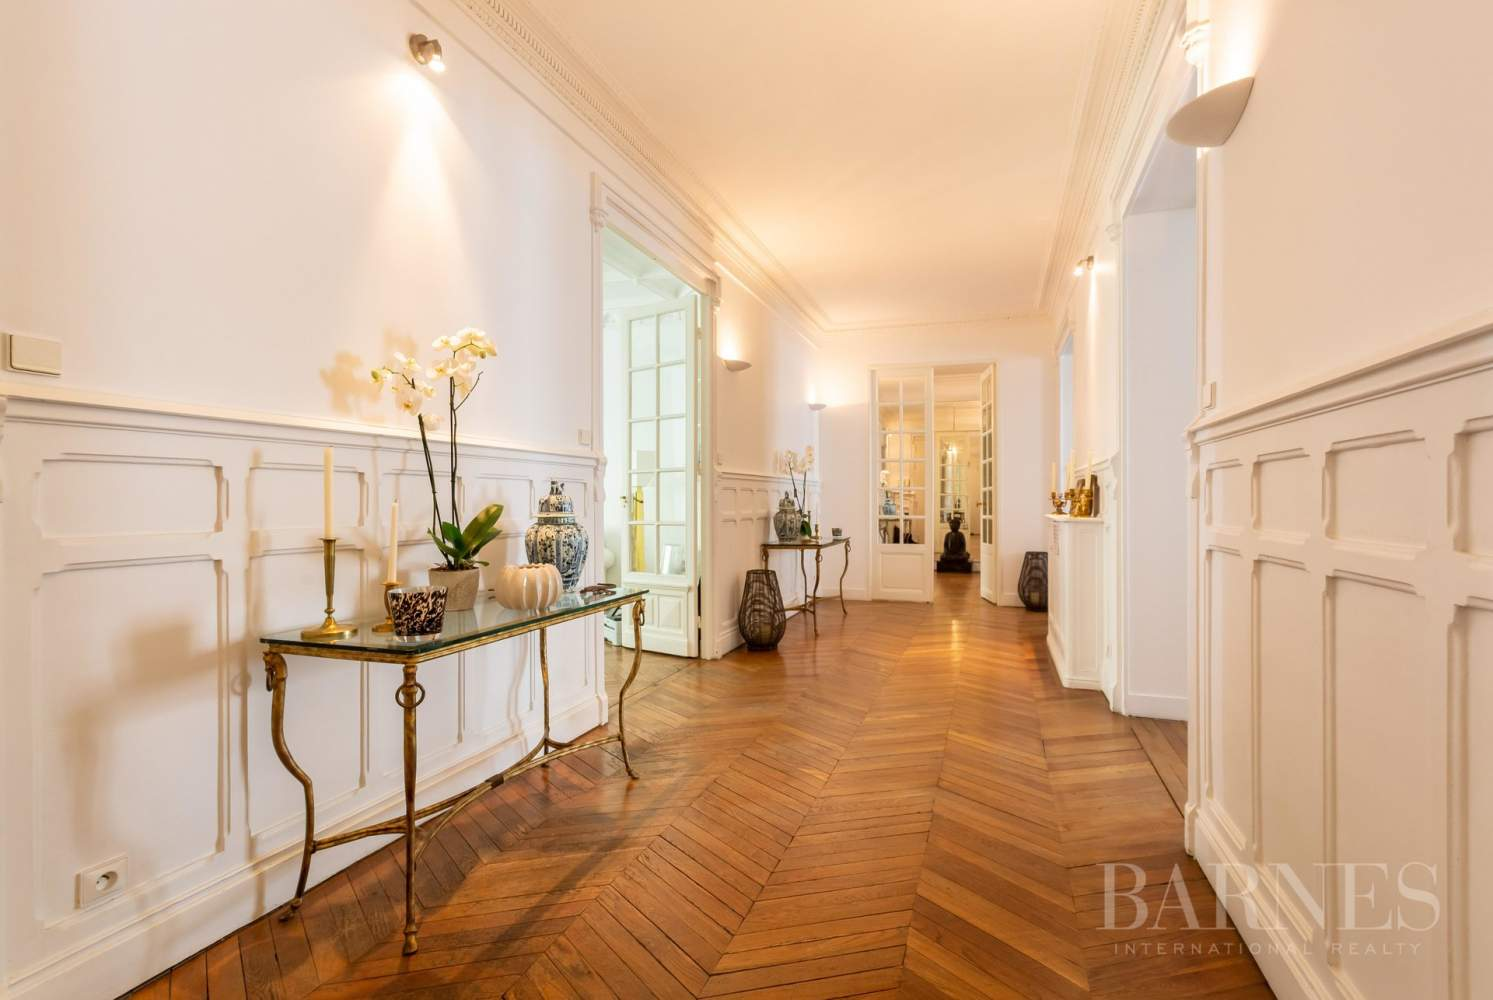 Sole Agent - Neuilly Sablons - Beautiful period parquet, mouldings, fireplace - garden picture 1